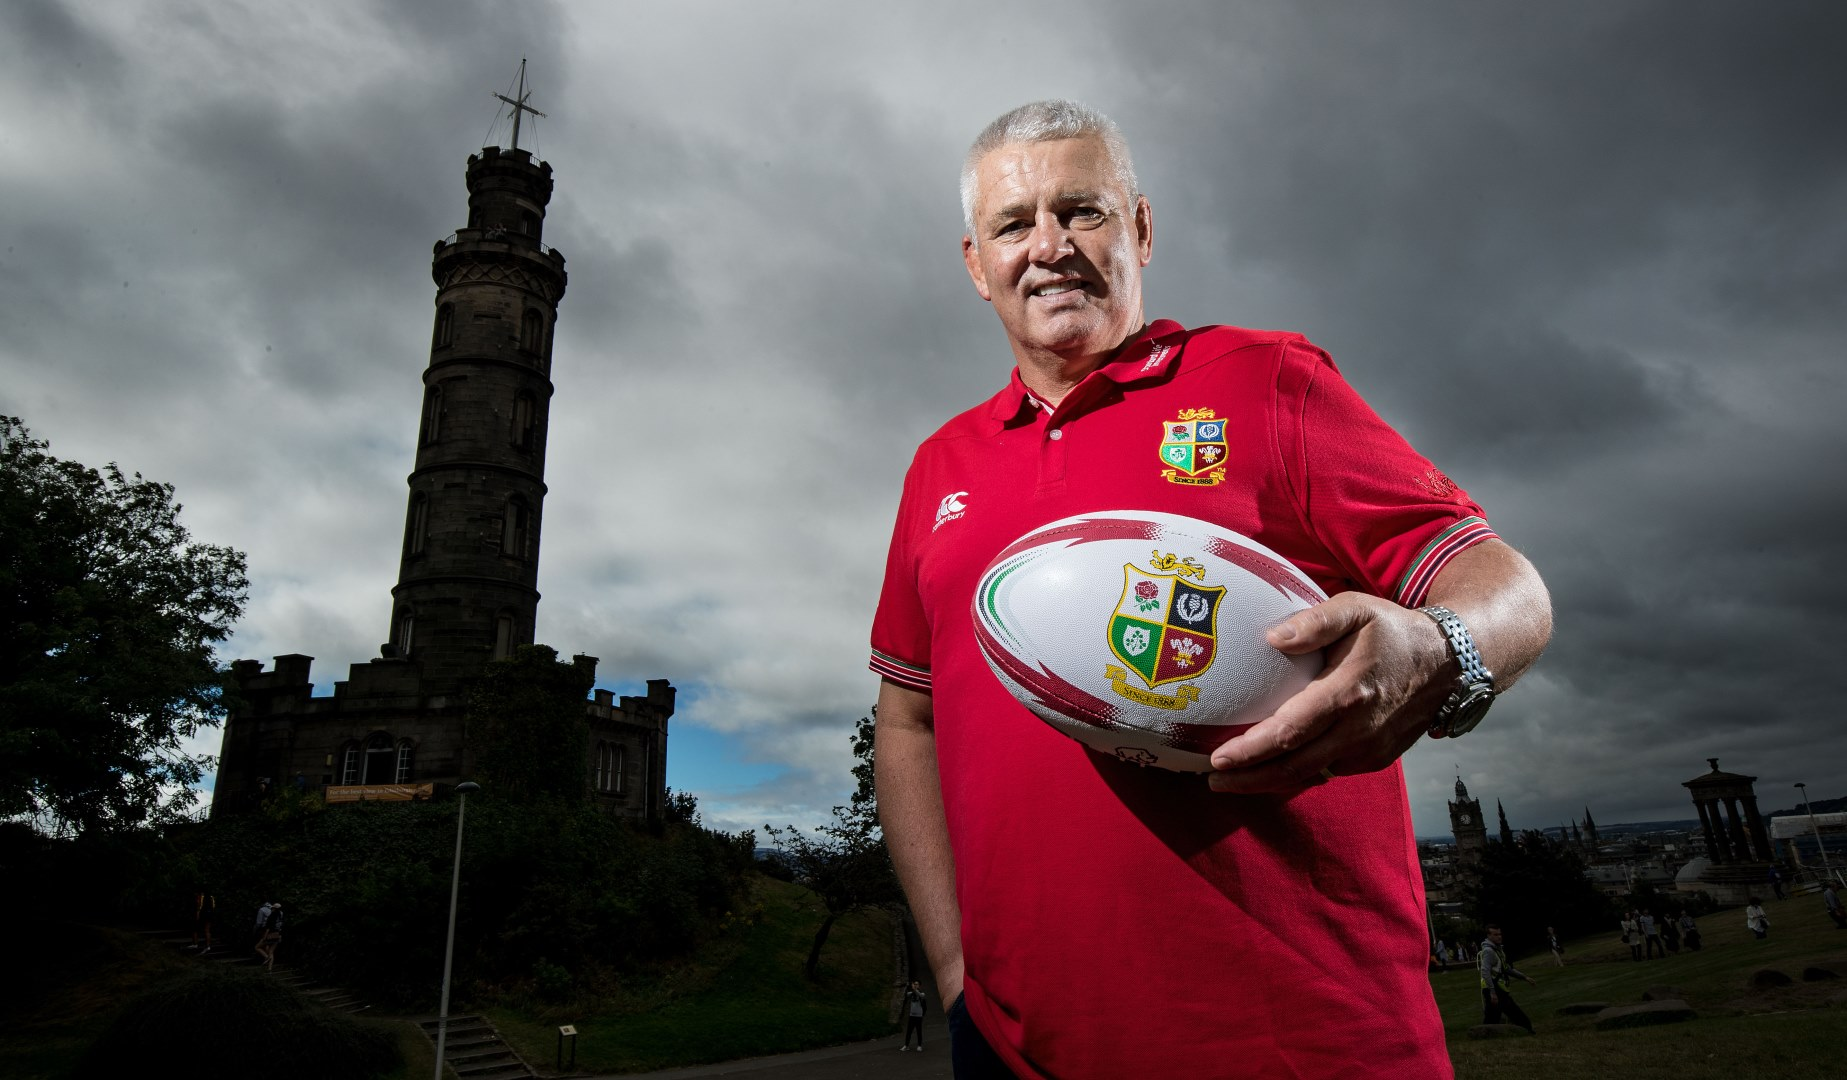 Gatland looking for 'strength of character' in 2017 Lions